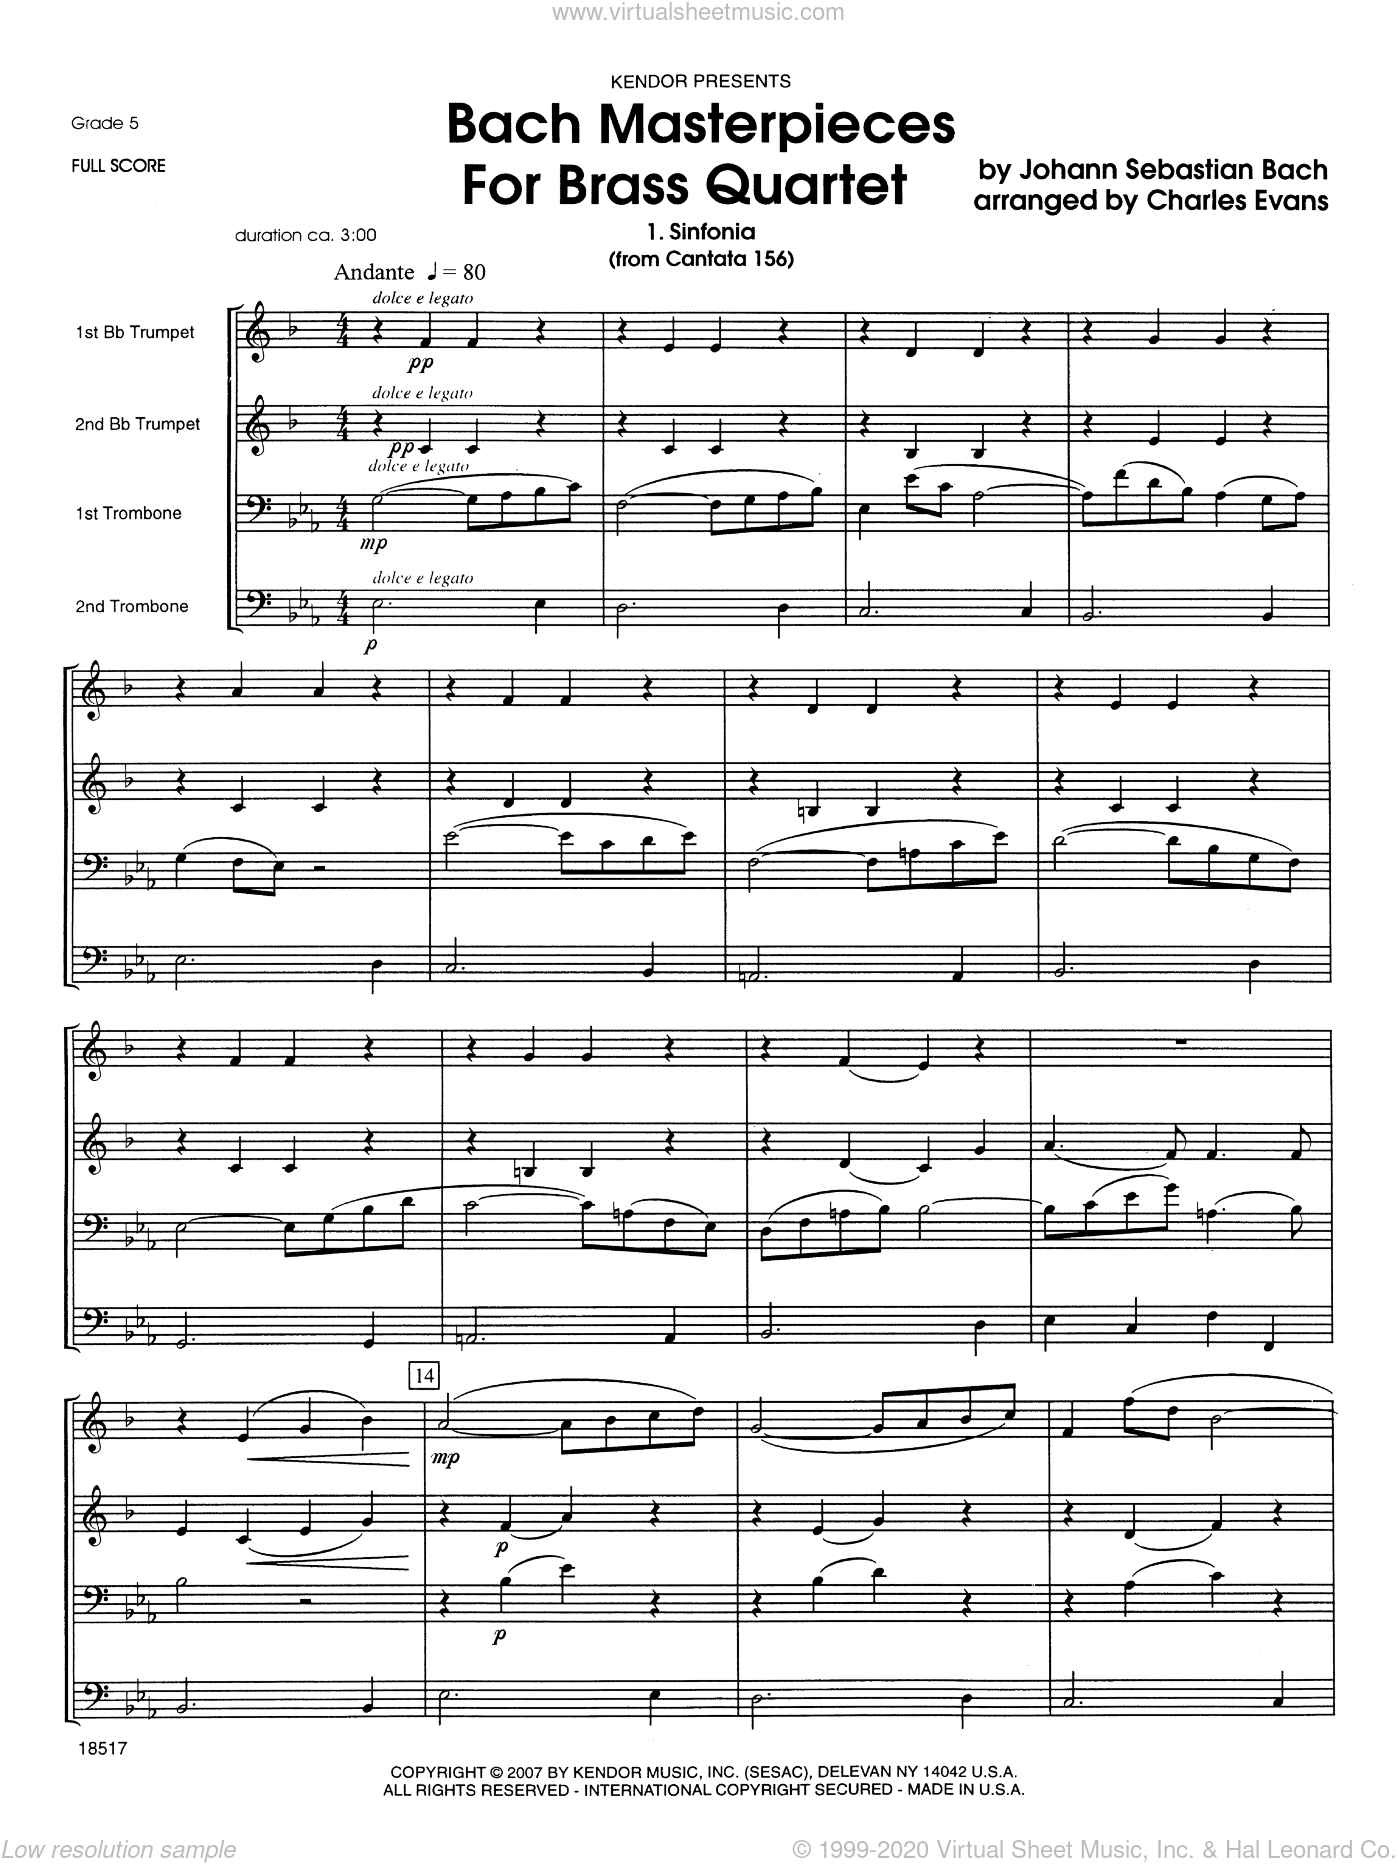 Bach Masterpieces For Brass Quartet sheet music for brass quartet (full score) by Johann Sebastian Bach